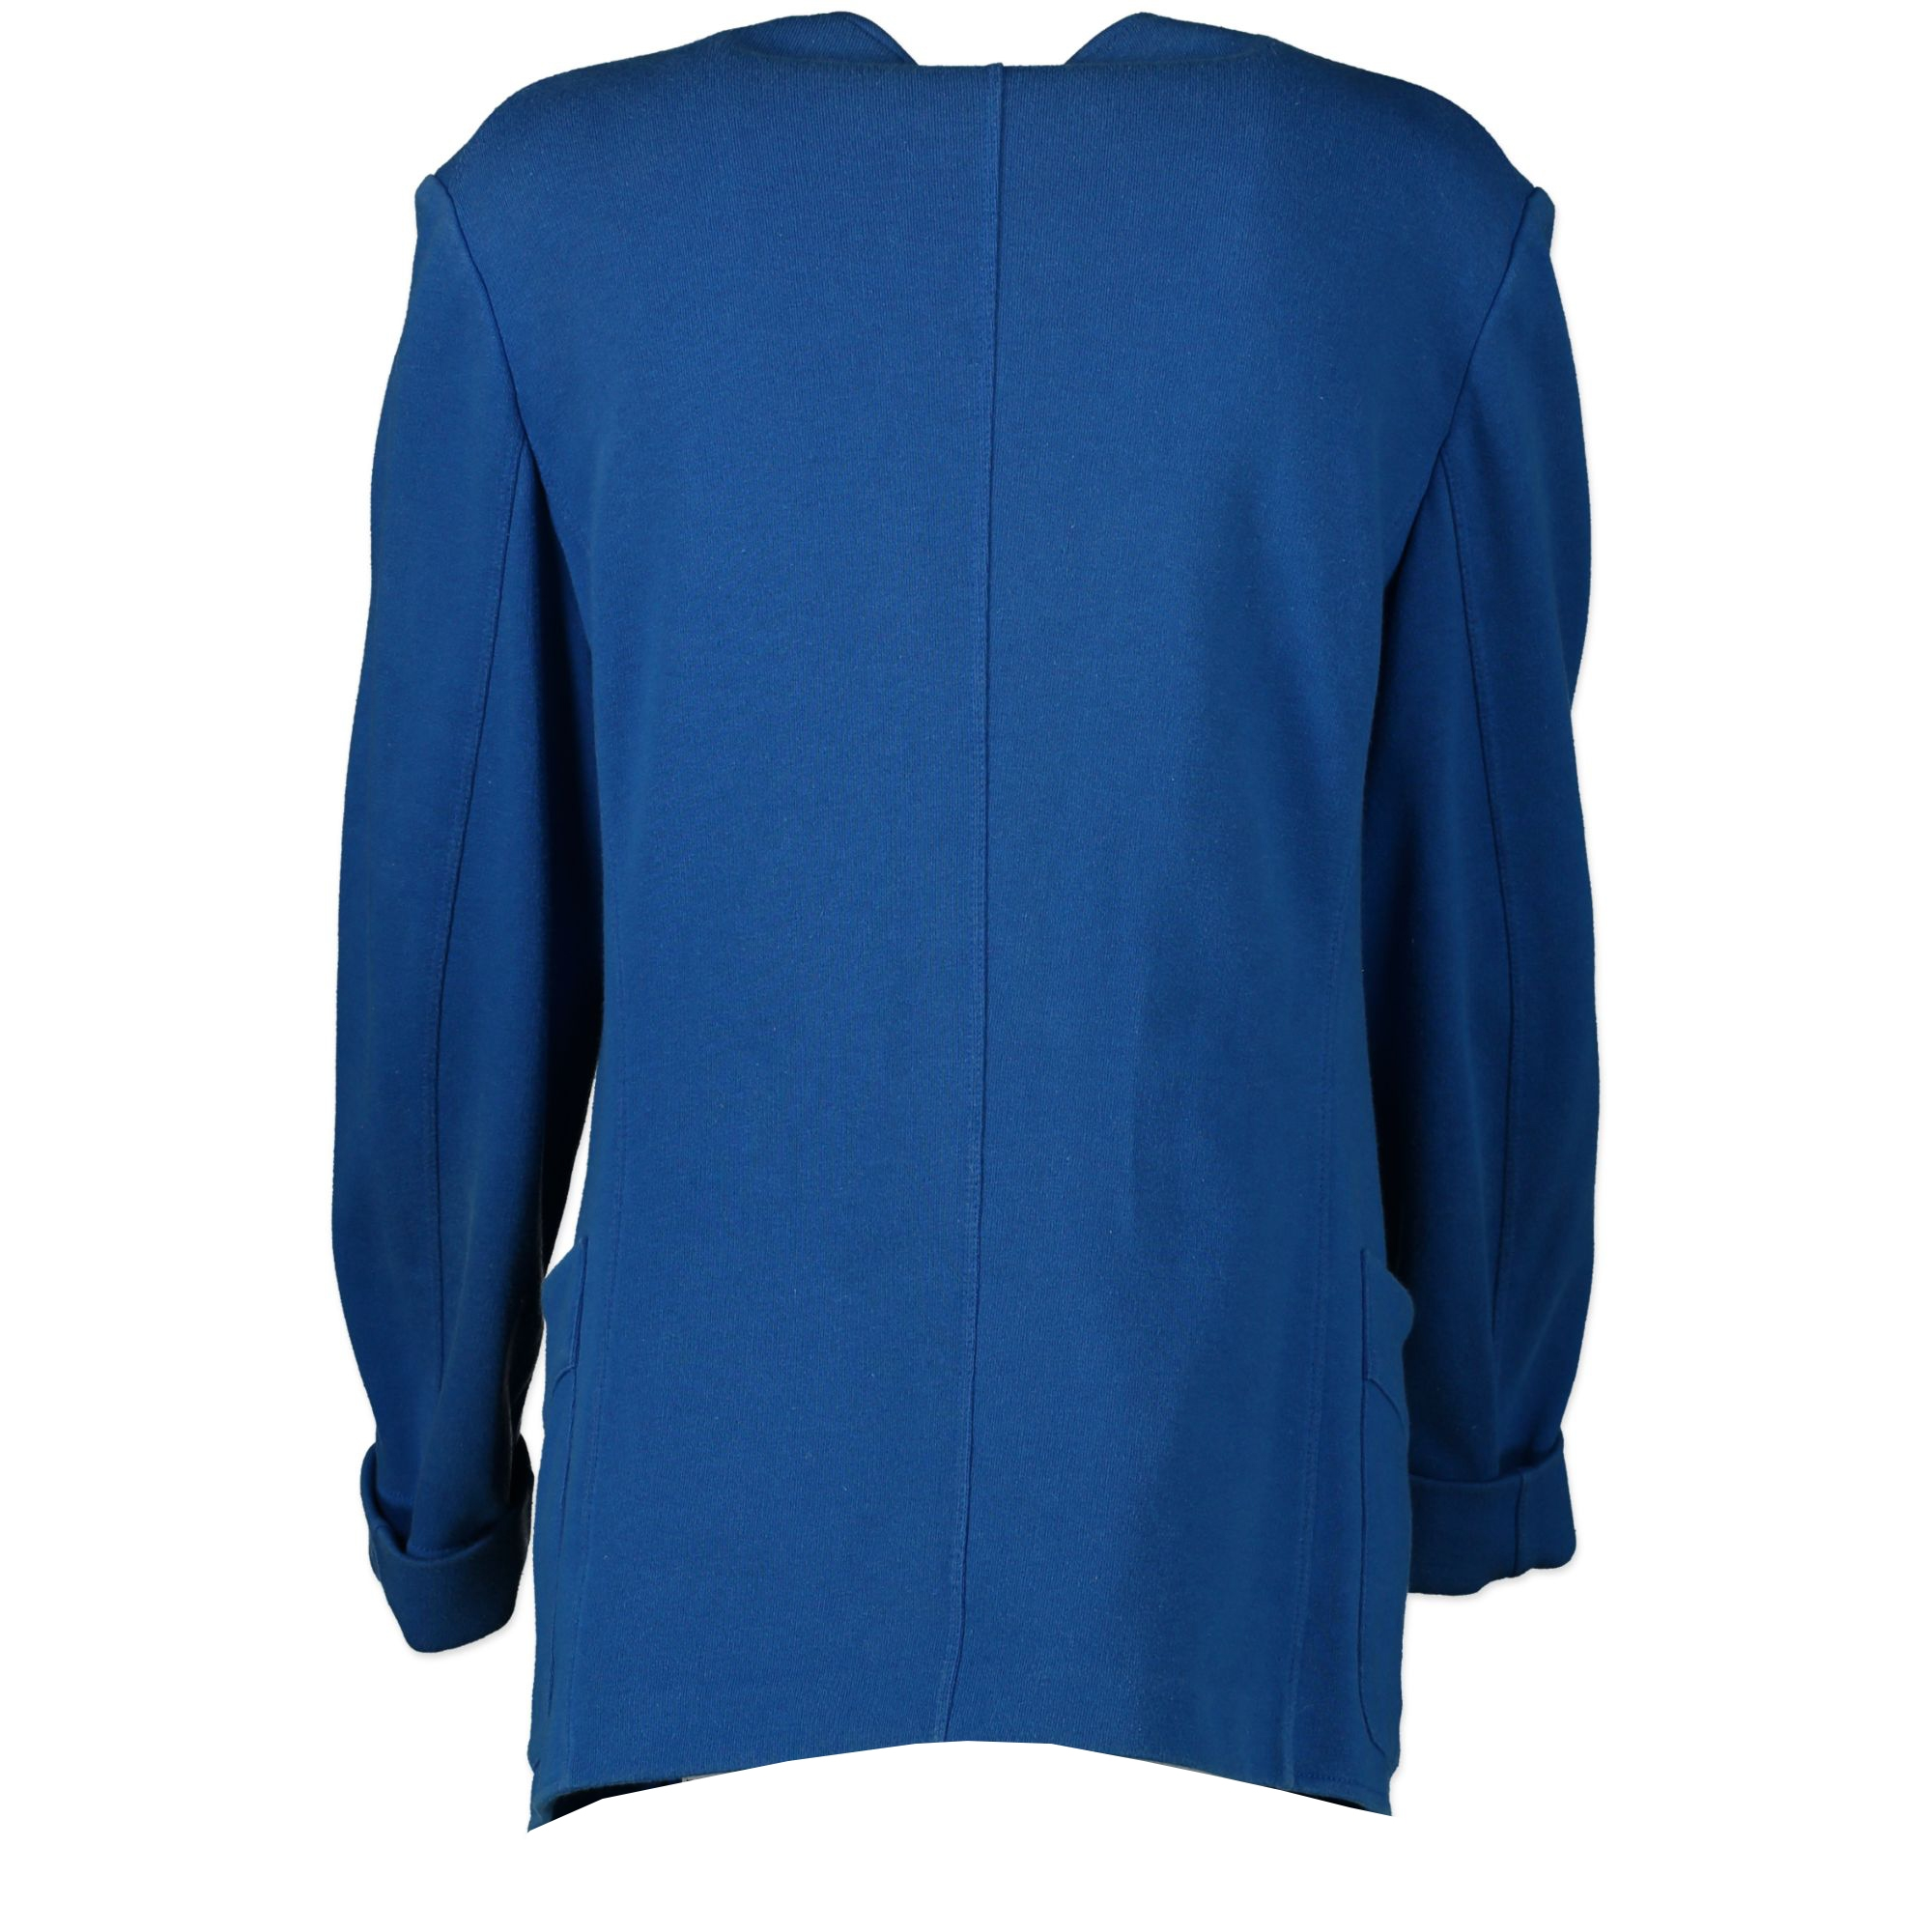 Hermès Cobalt Blue Cotton Jacket for the best price at Labellov online